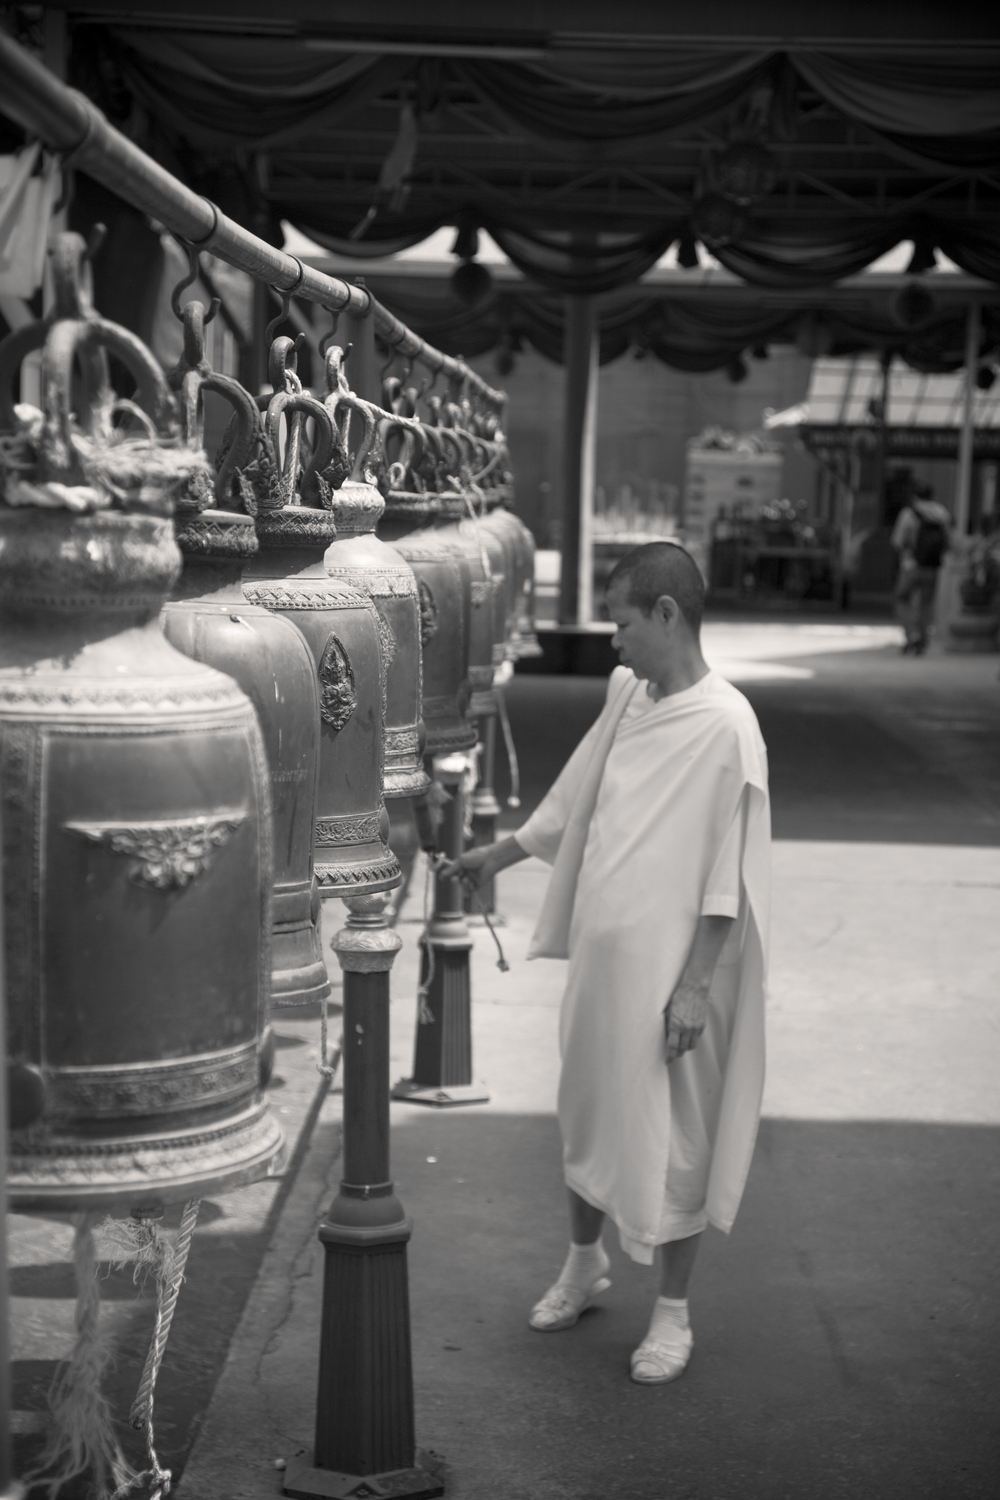 A Buddhist Nun rings the bells in the grounds of Wat Kalayanamitr